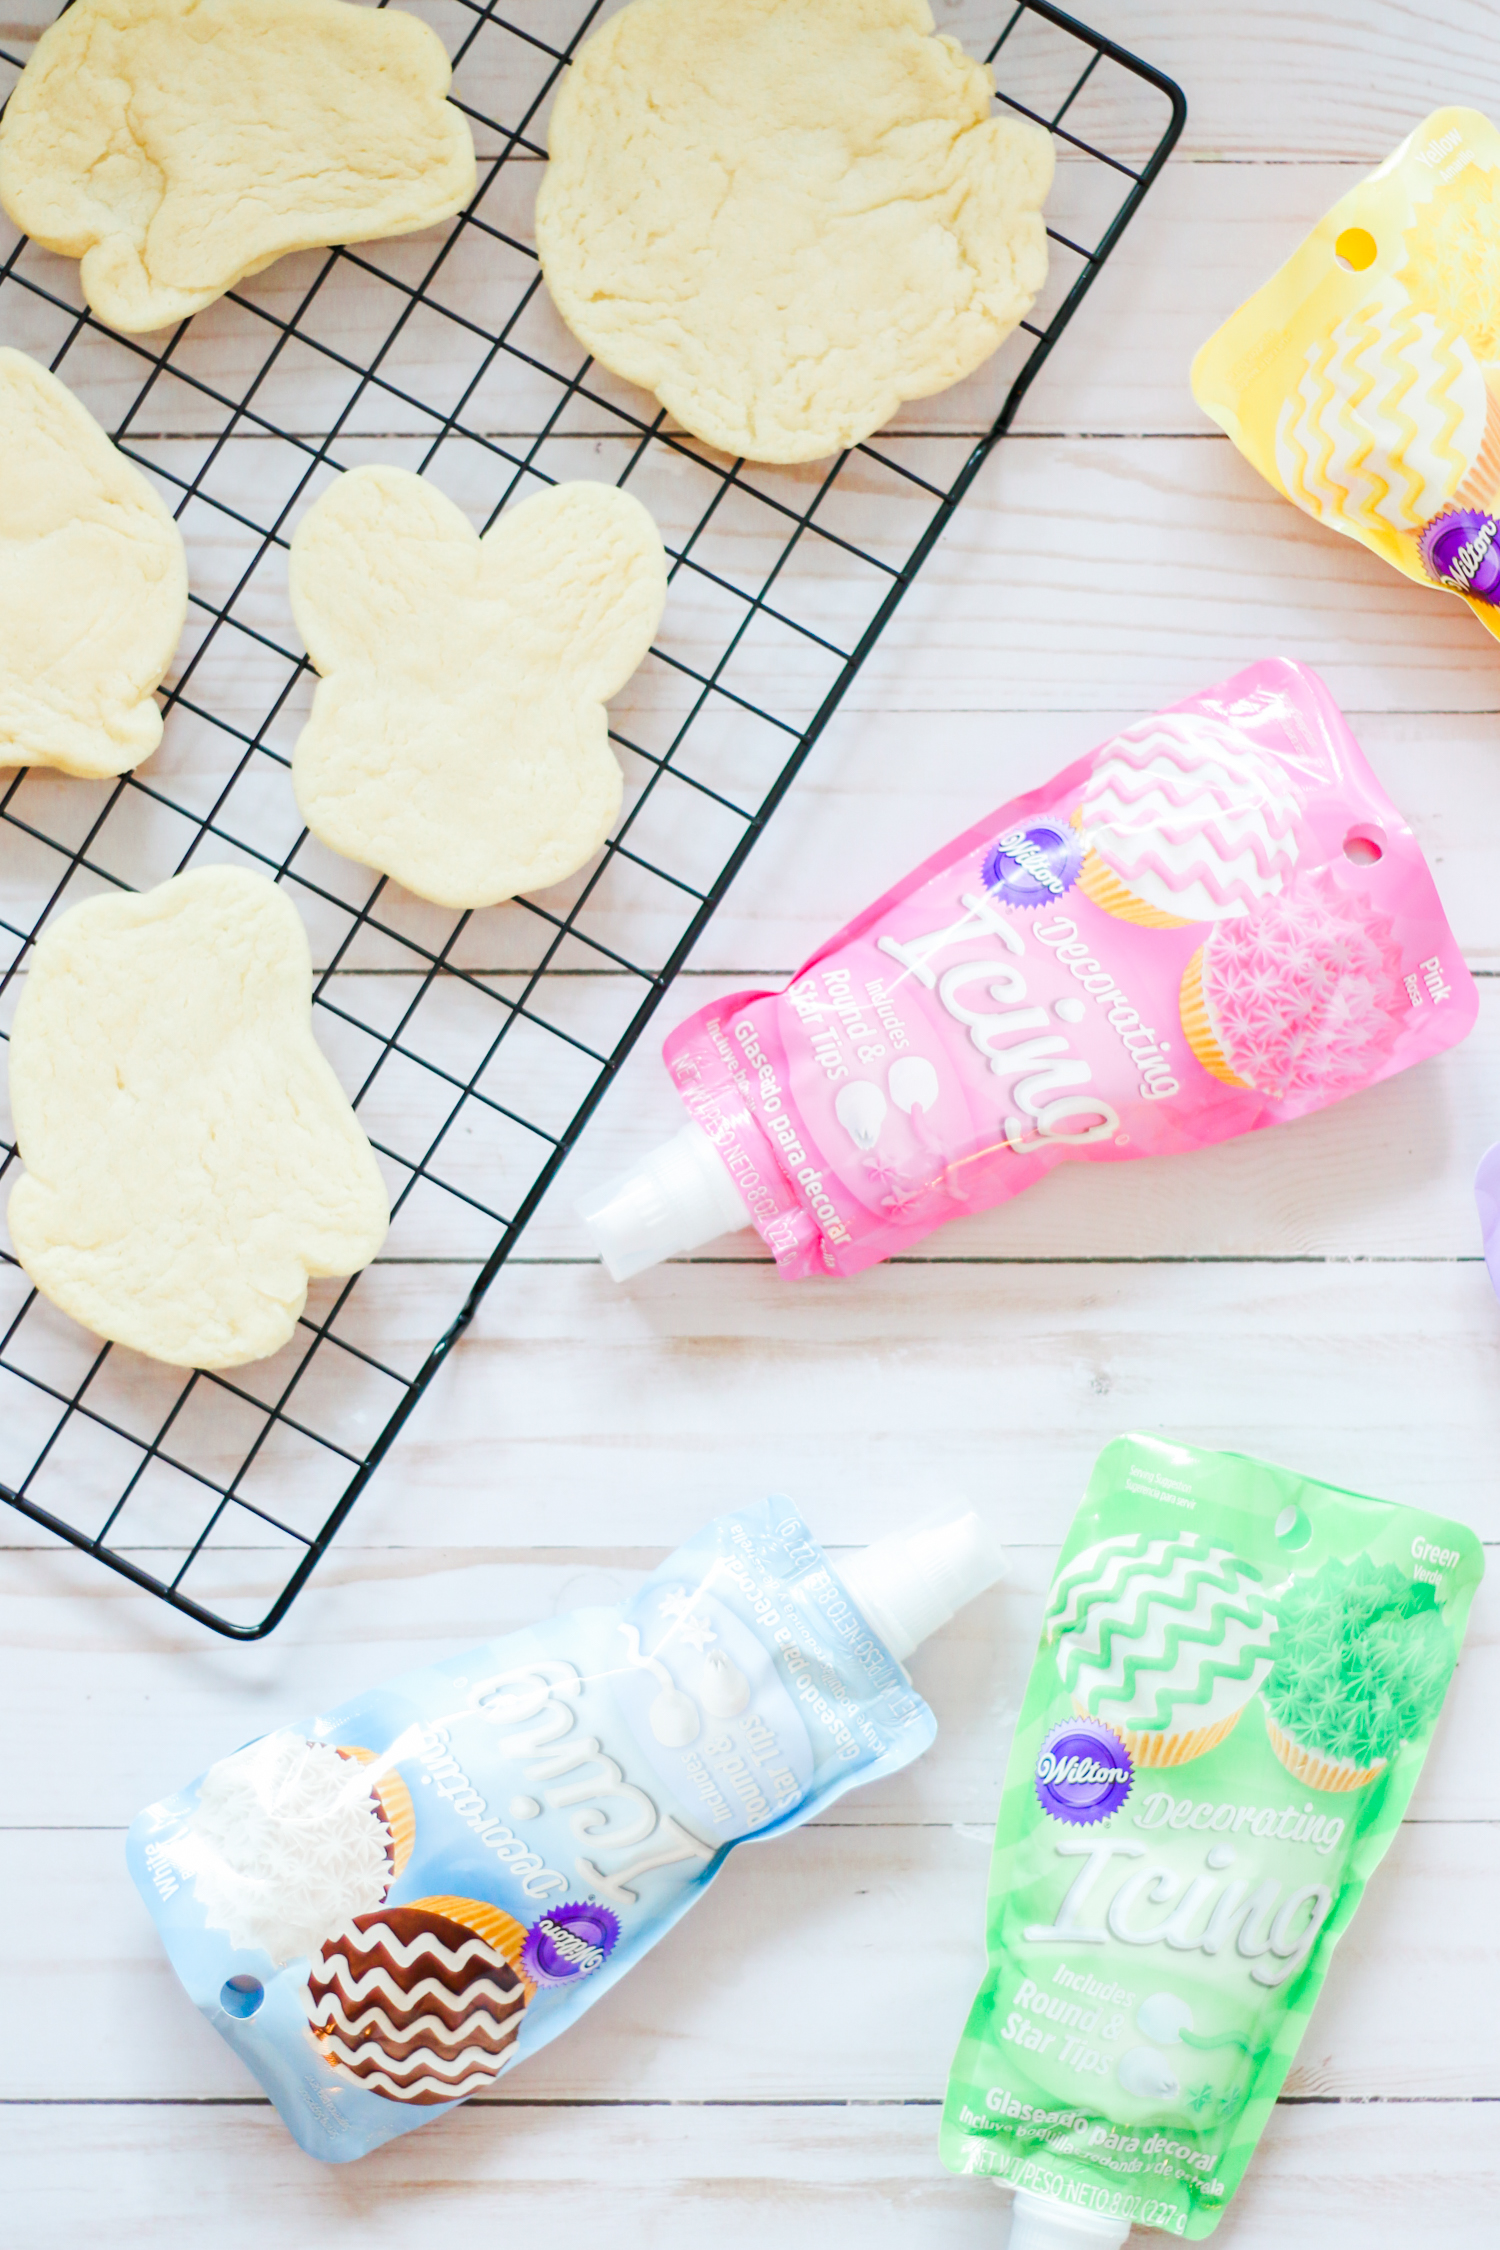 Spring Cravings: How to Survive Your Sweet Tooth with Heartburn by southern lifestyle blogger Stephanie Ziajka from Diary of a Debutante, best way to get rid of heartburn, Omeprazole ODT, Omeprazole orally disintegrating tablet review, Easter cookie baking